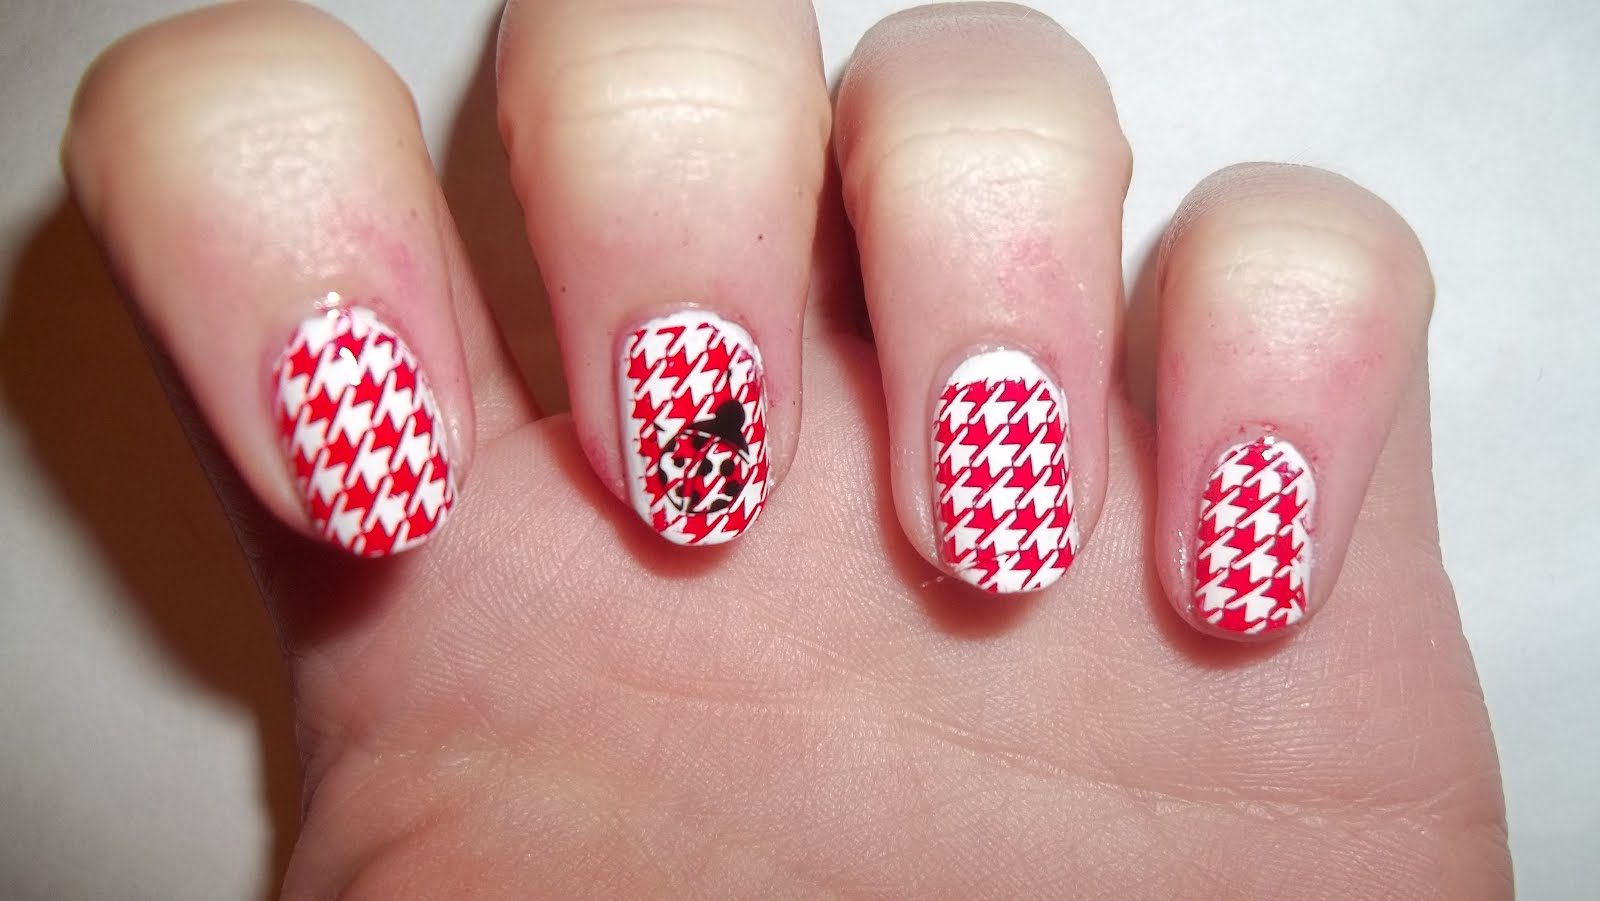 Images of red and white nail art nail art design red and white most beautiful red and white nail art design ideas view images prinsesfo Images